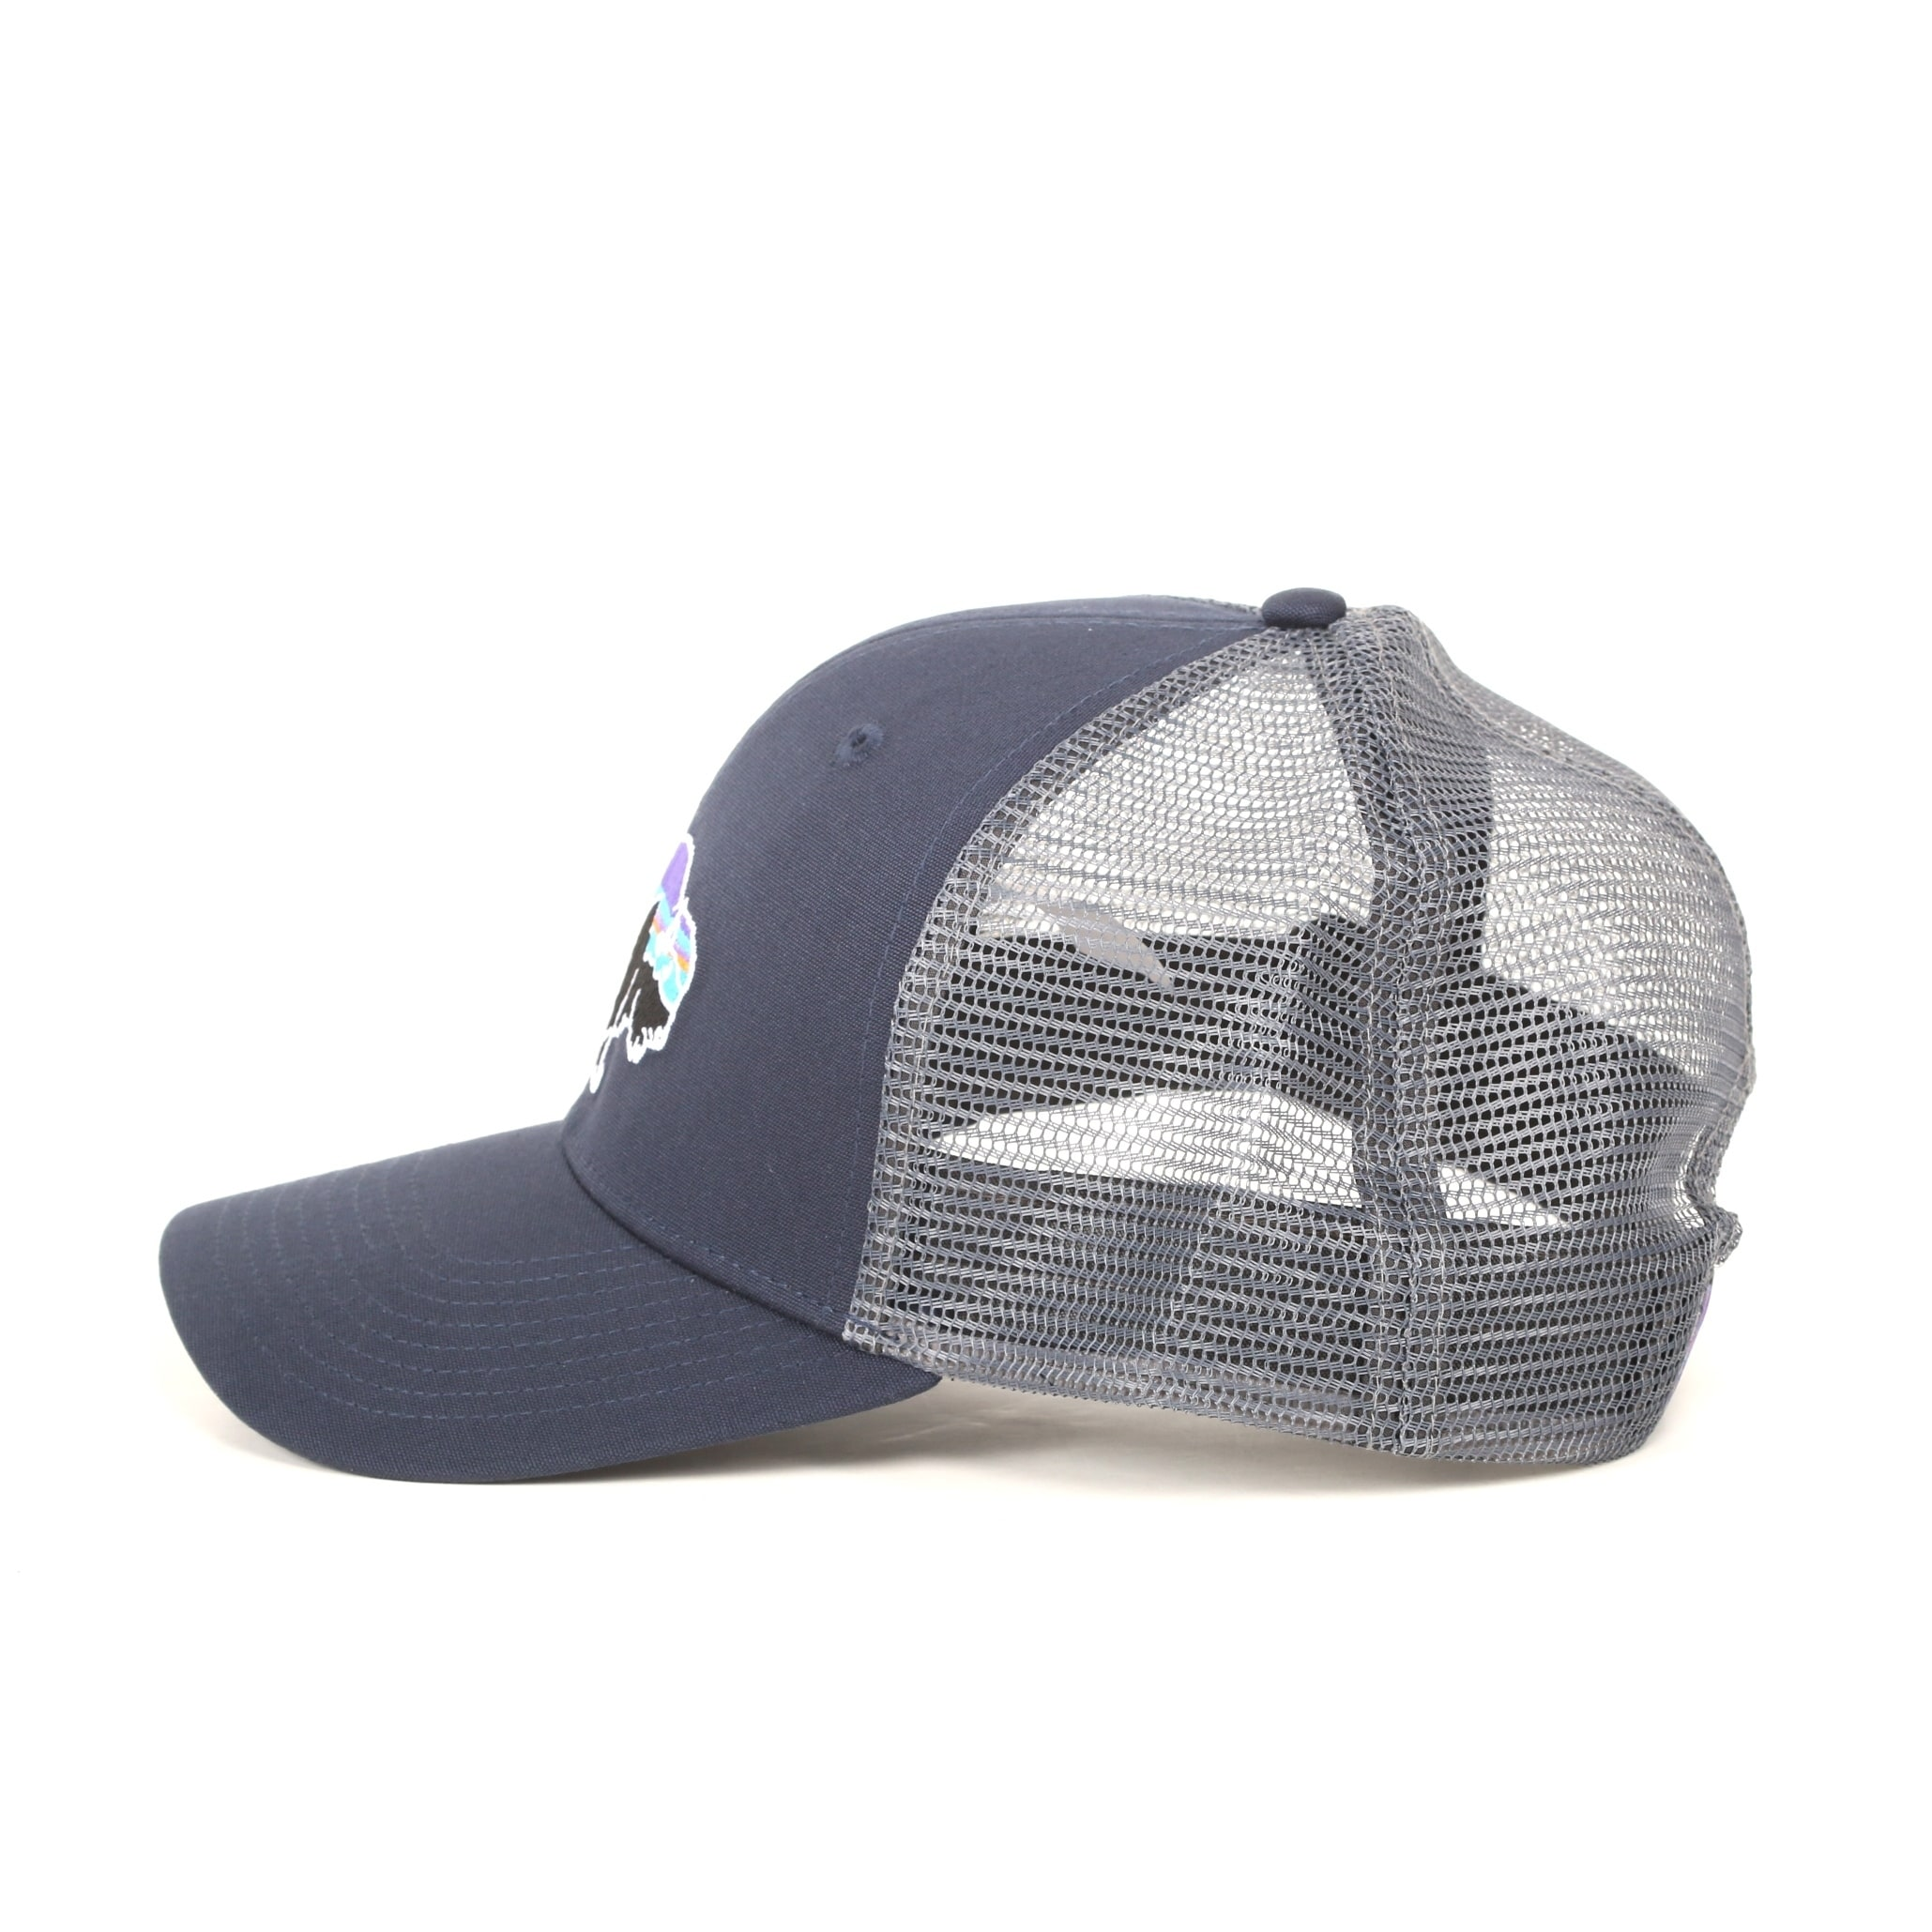 Shop Patagonia Fitz Roy Bison Trucker Hat - Ships To Canada - Overstock -  18904921 3471fb7a027a